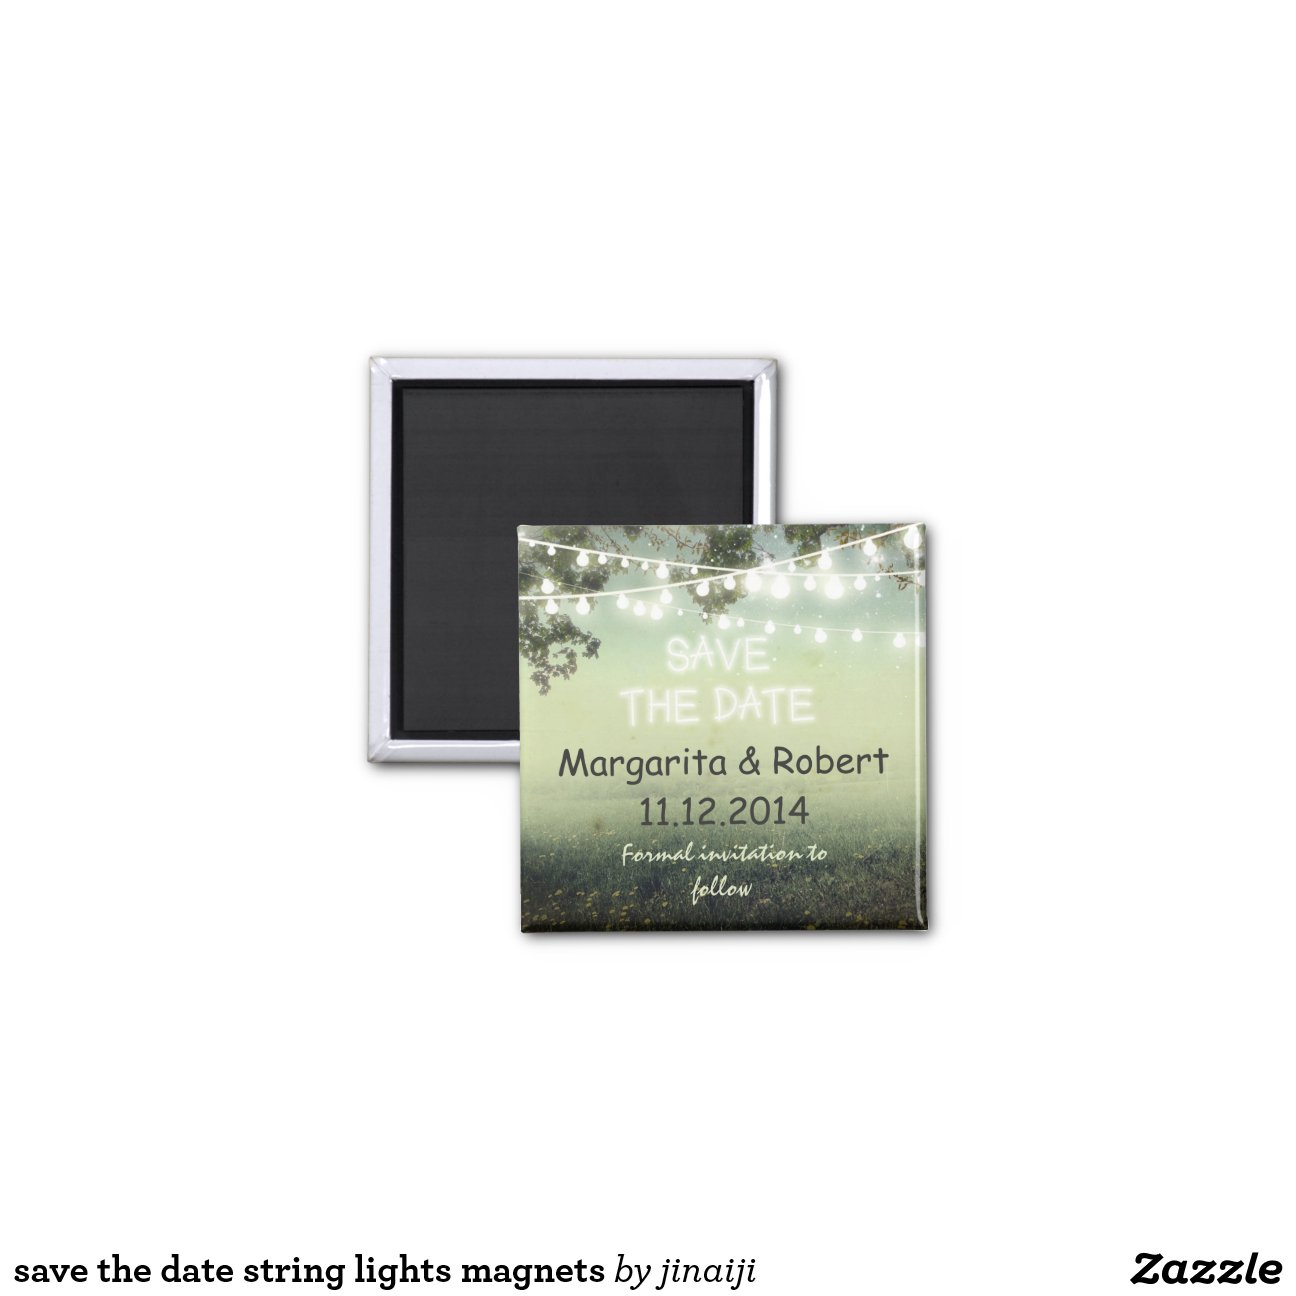 save the date string lights magnets magnets Zazzle